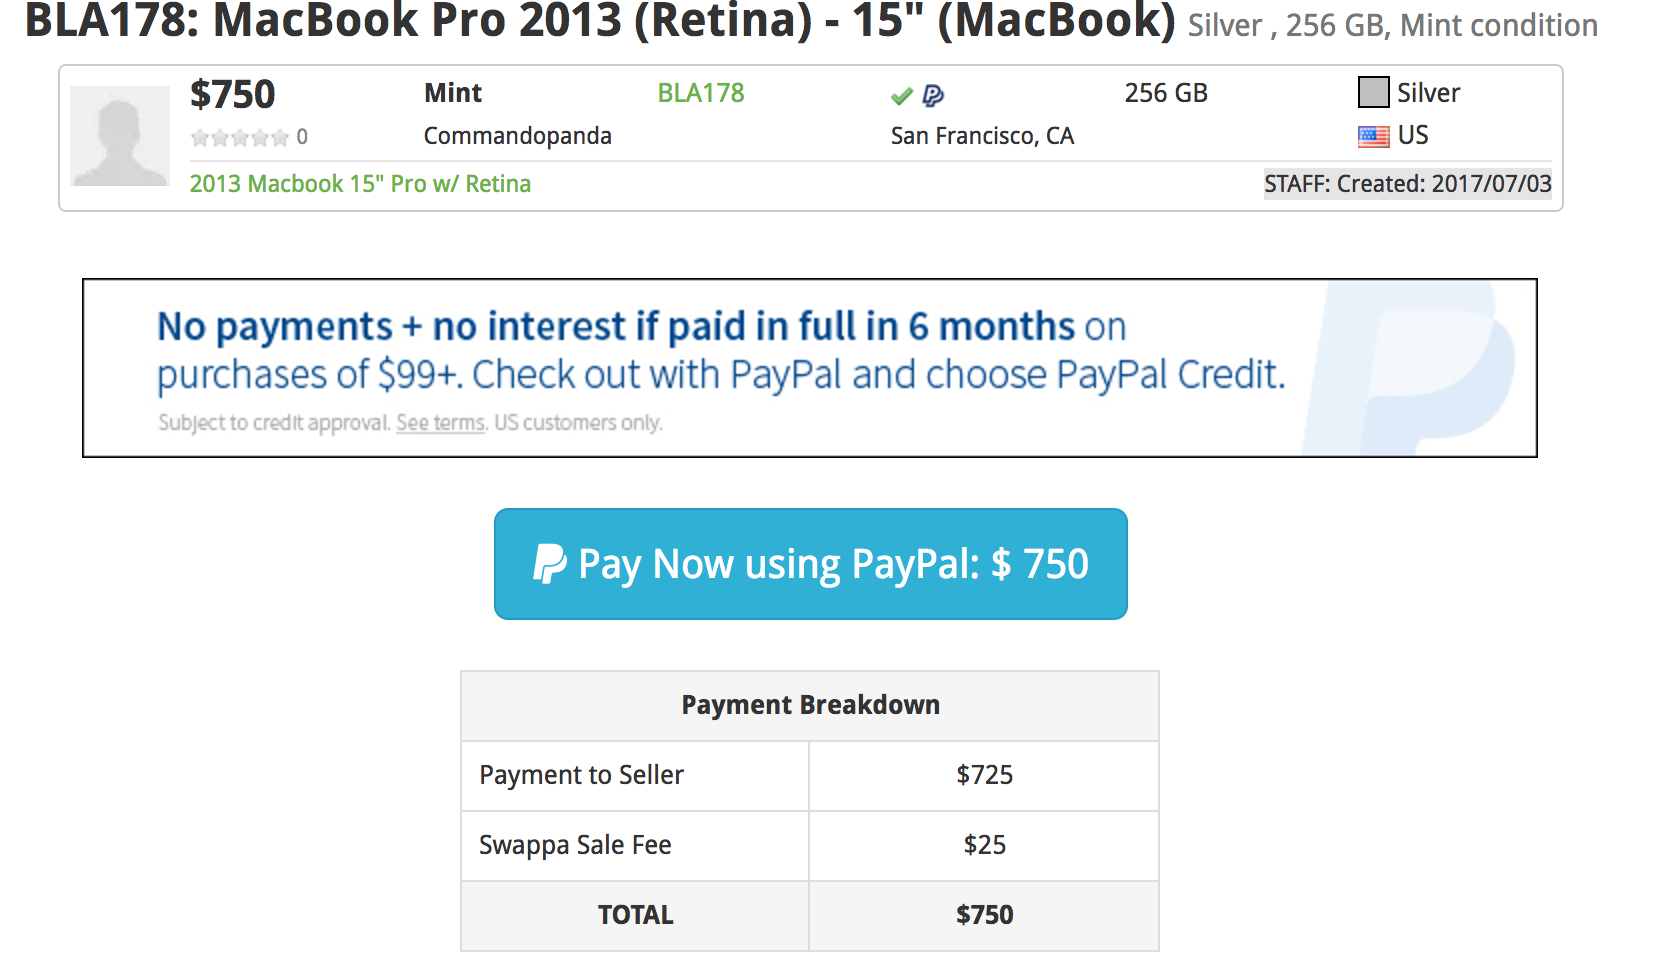 Buy a used MacBook using PayPal Credit - Swappa Blog